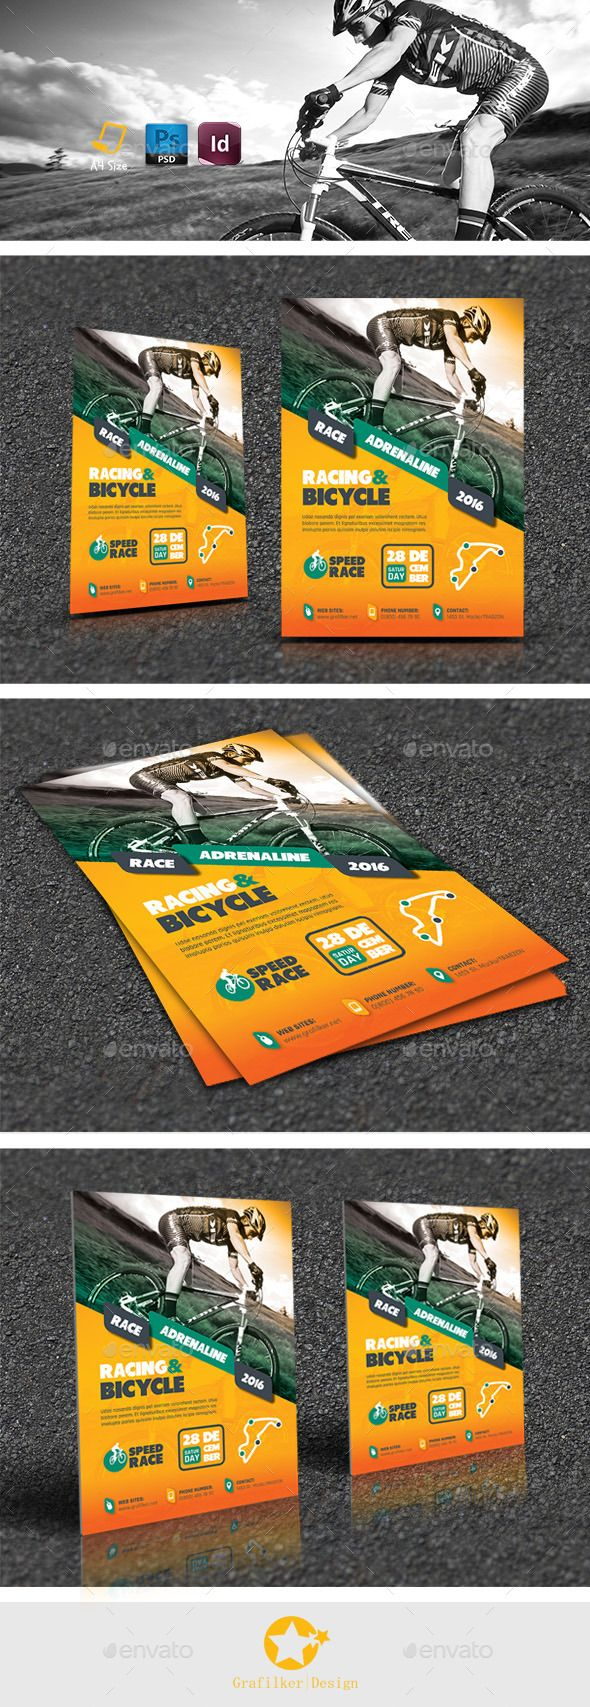 Bicycle Racing Flyer Templates   Flyer template, Racing and Flyers